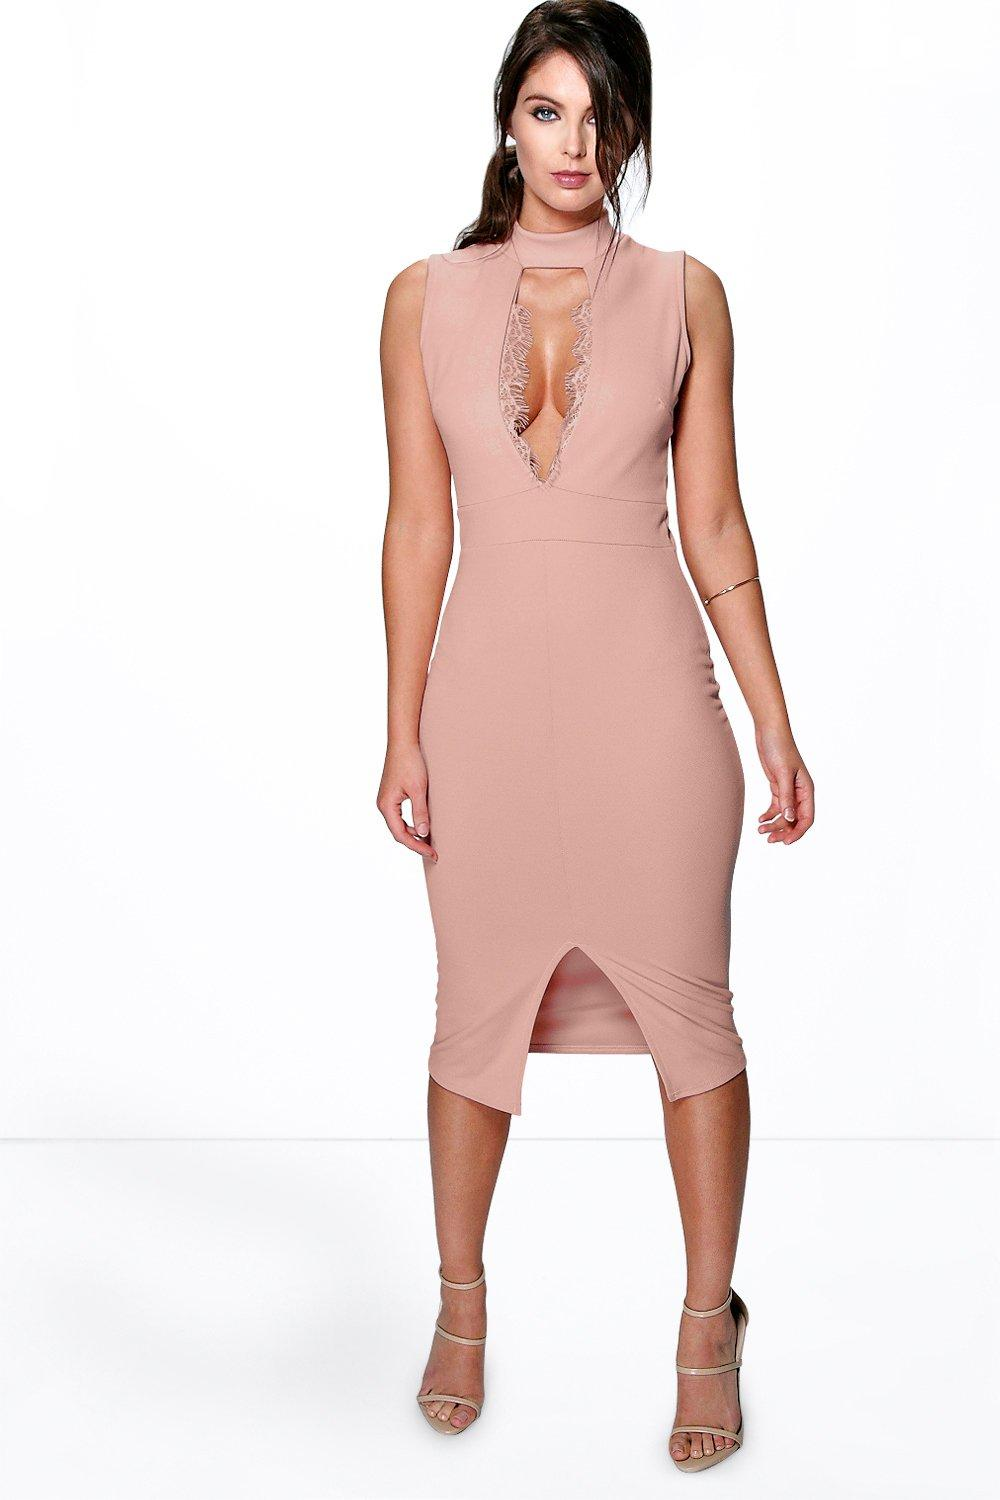 Kelly Eyelash Trim Cut Out Midi Dress